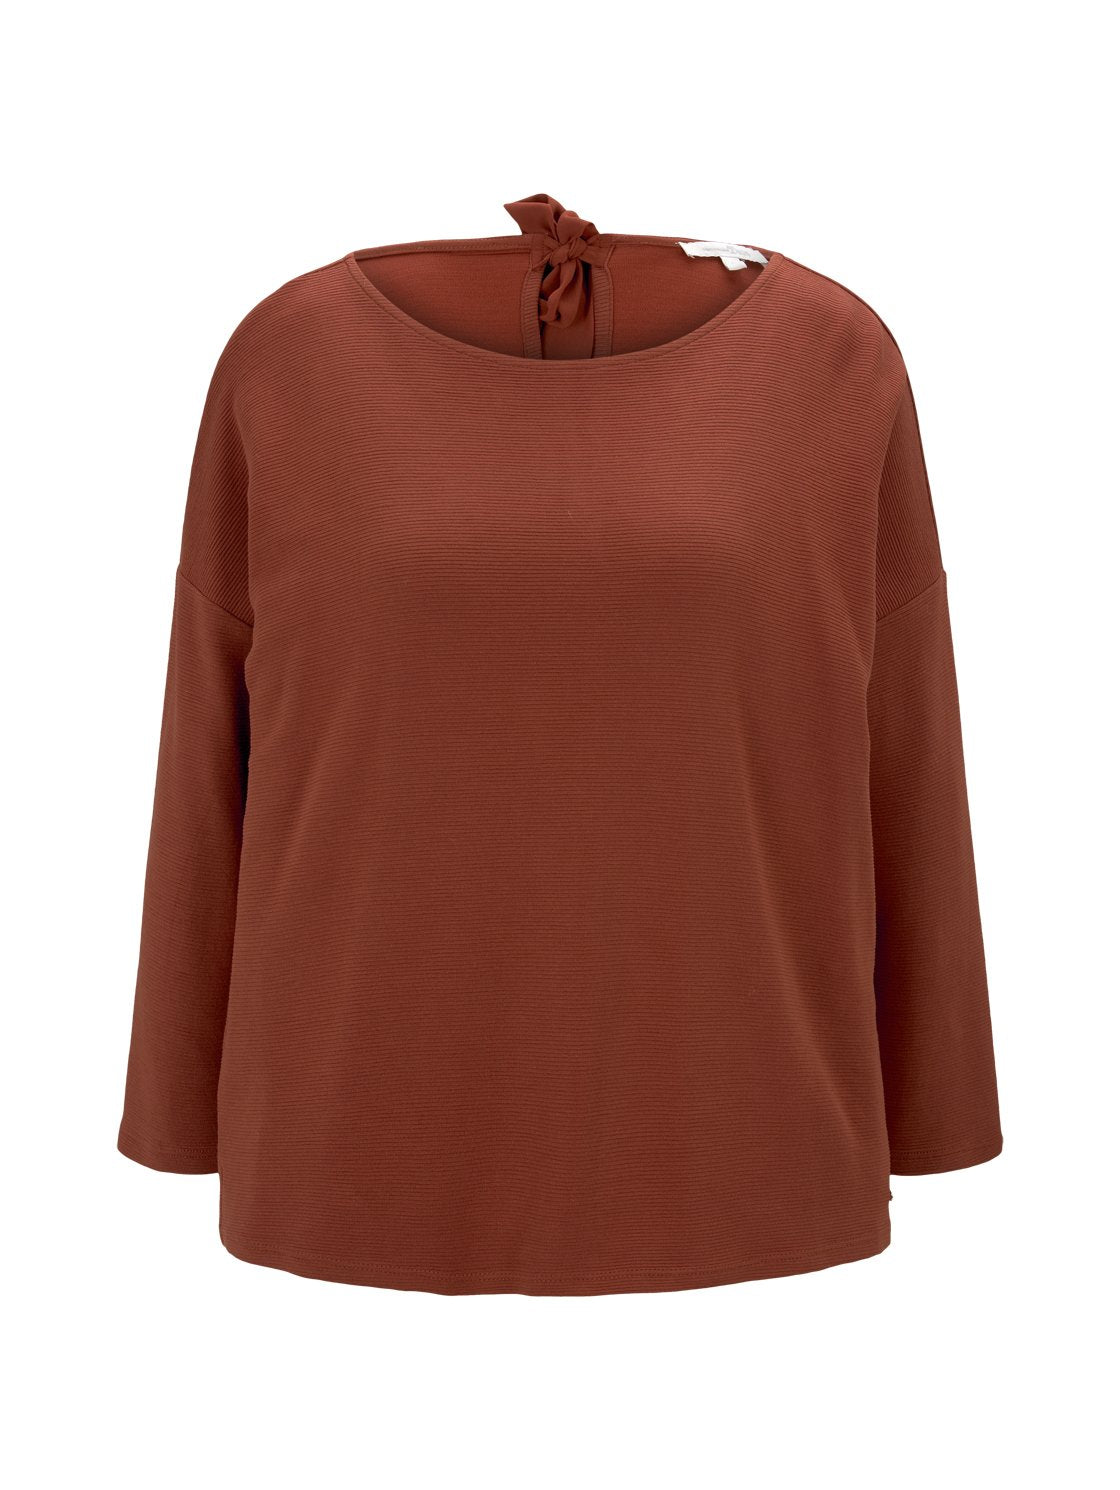 Tom Tailor rust top 1021109